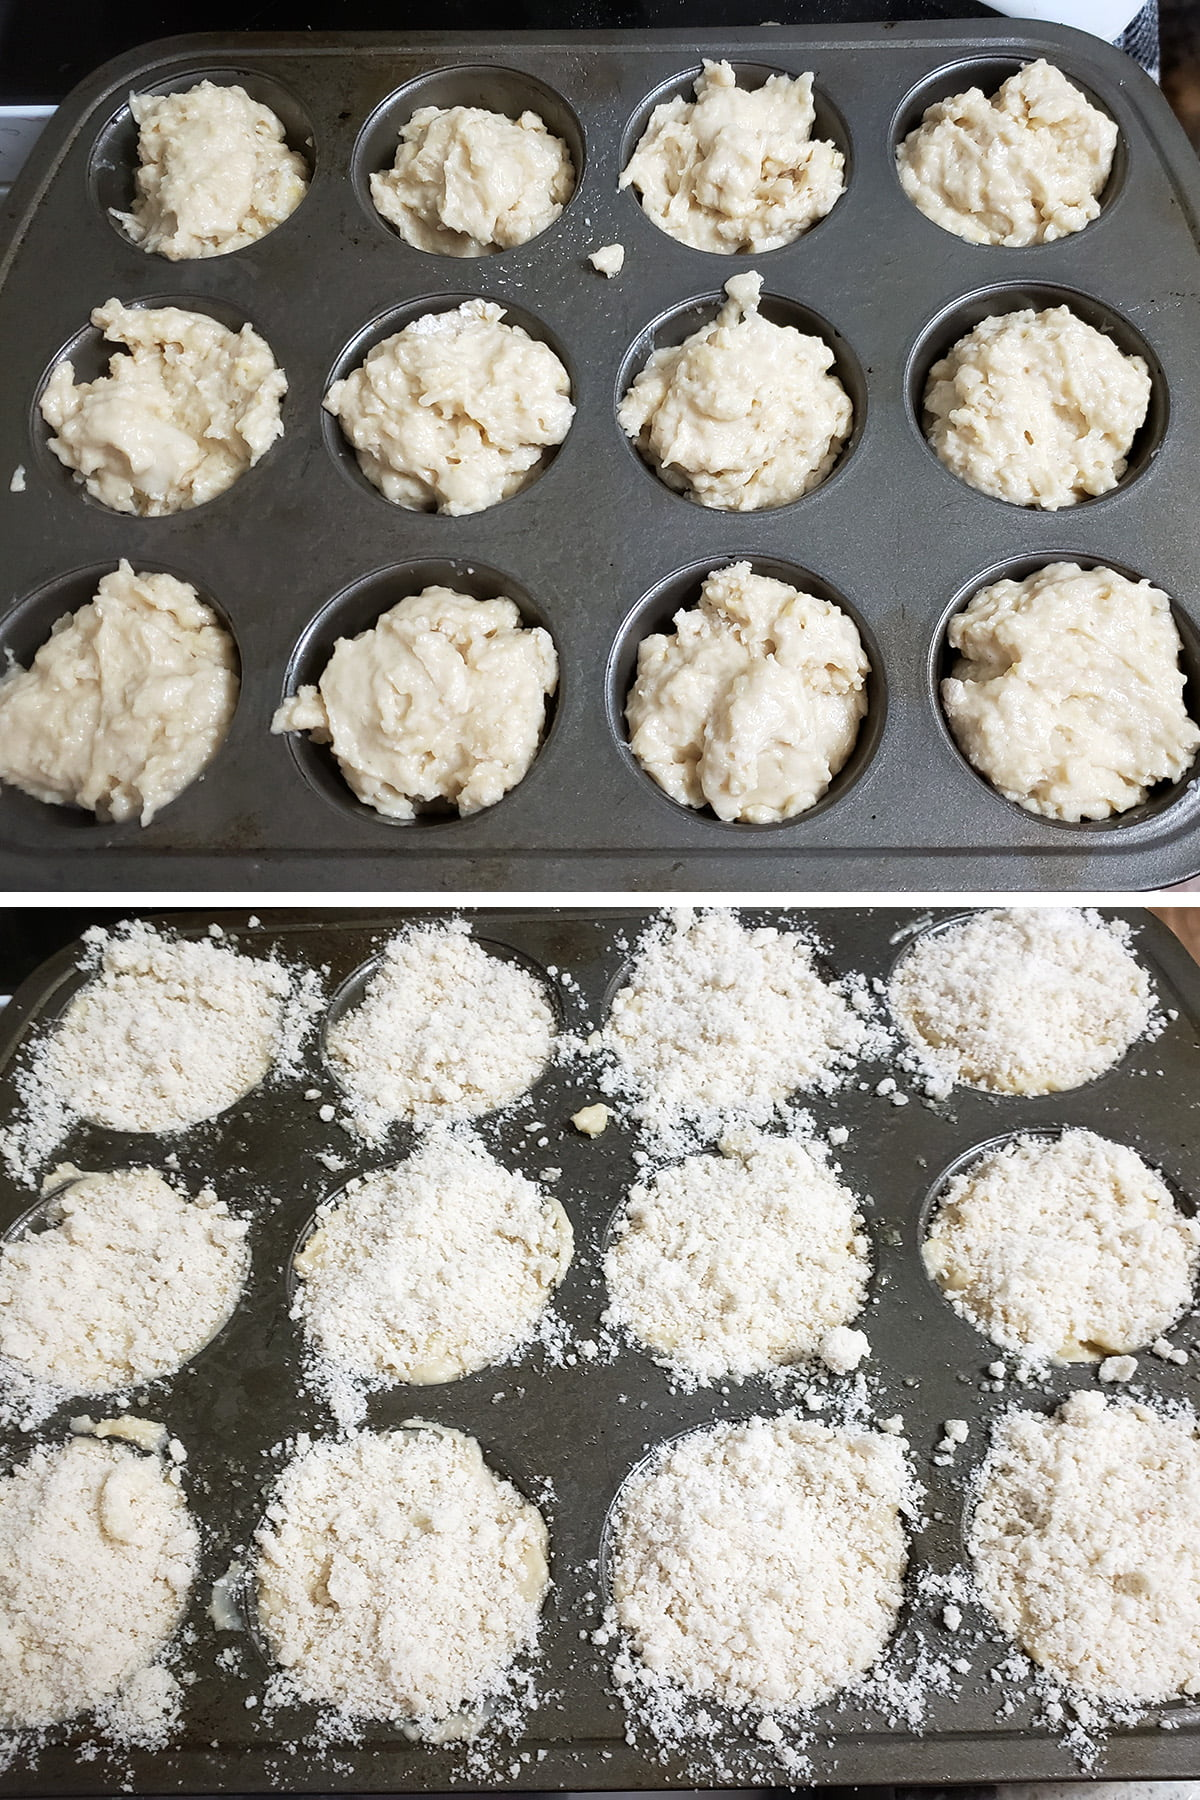 A two part compilation image showing the batter in the muffin pan, and then the raw muffins being topped with streusel mixture.